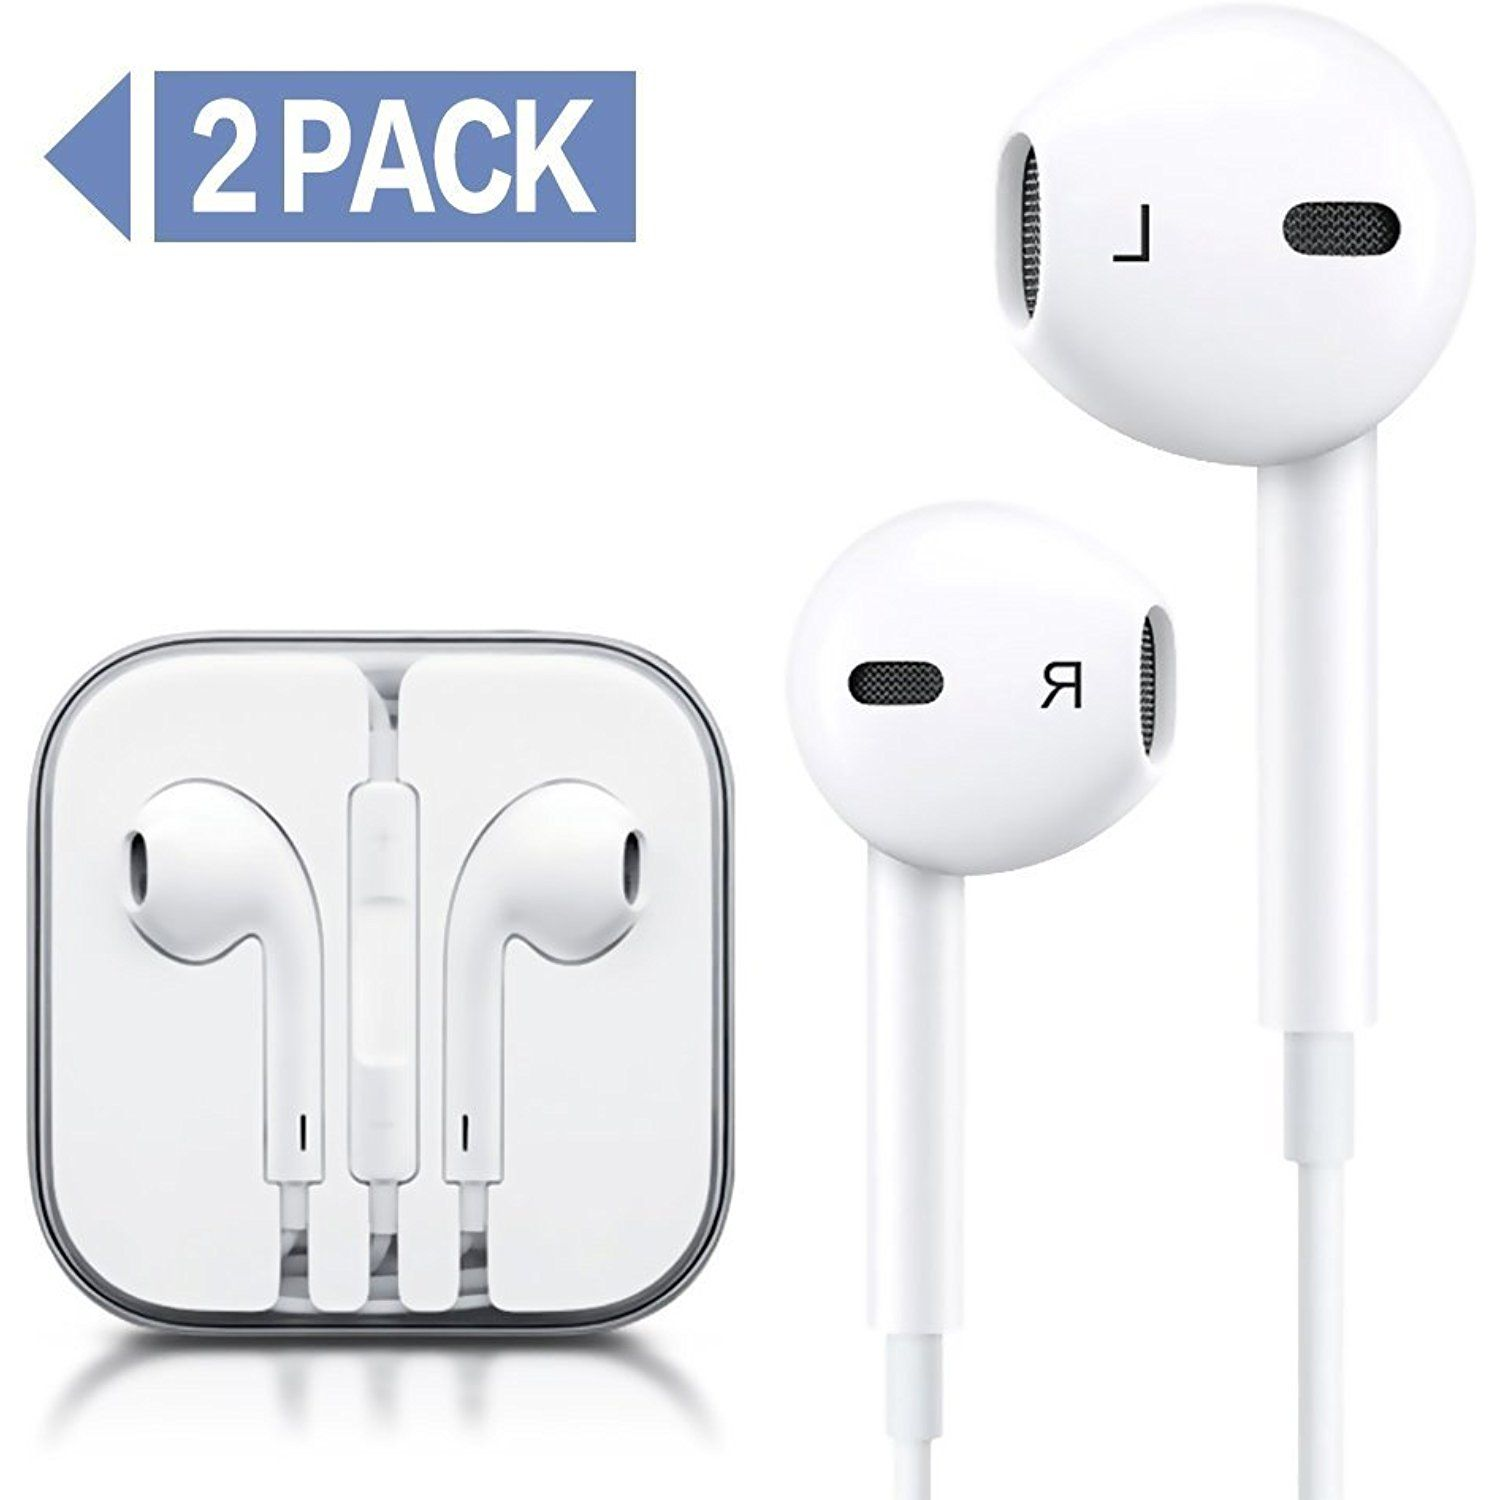 hight resolution of pack wire headphones earbuds with mic earphones and remote control for apple iphone ipod ipad samsung galaxy white white continue to the product at